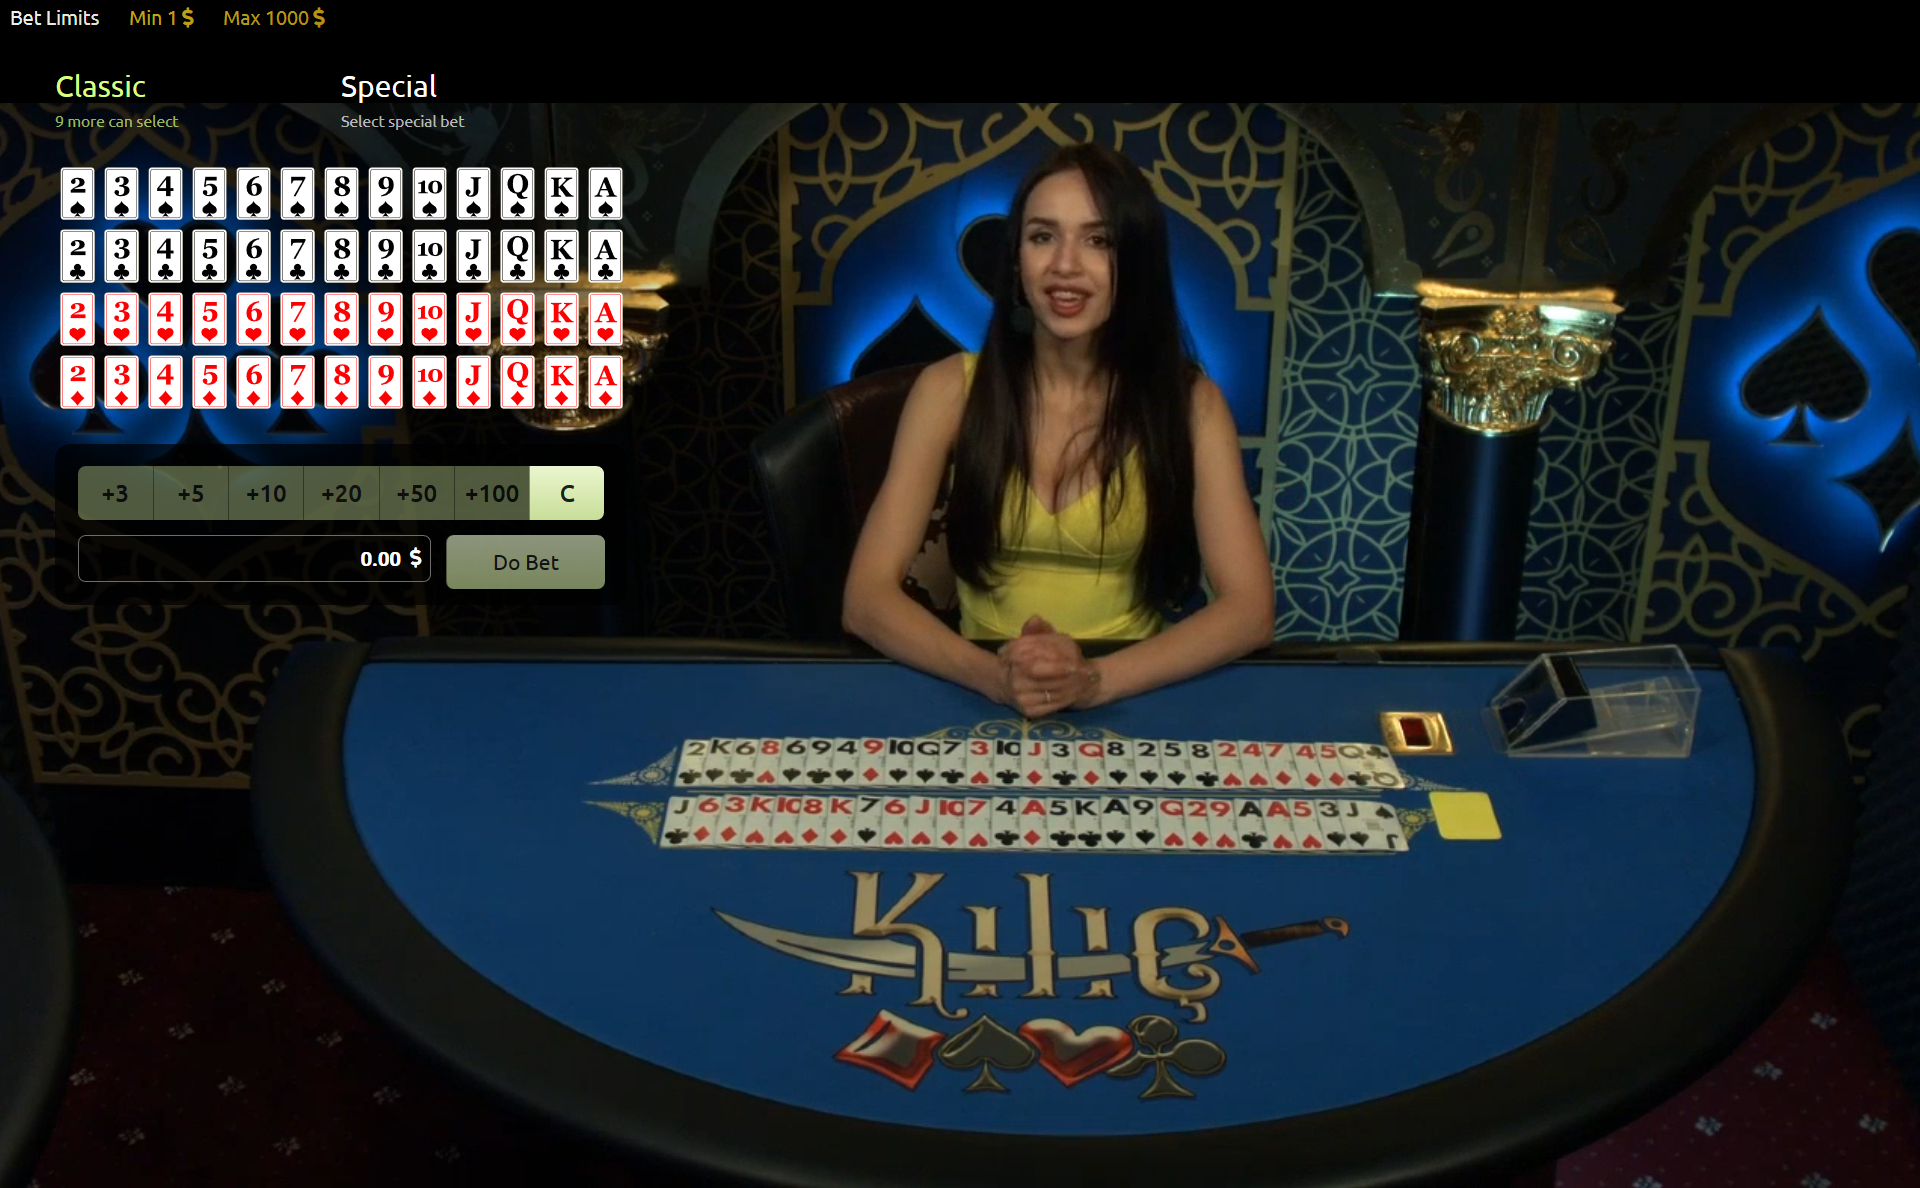 The new online casino card game Kilic being played live at 1xBet